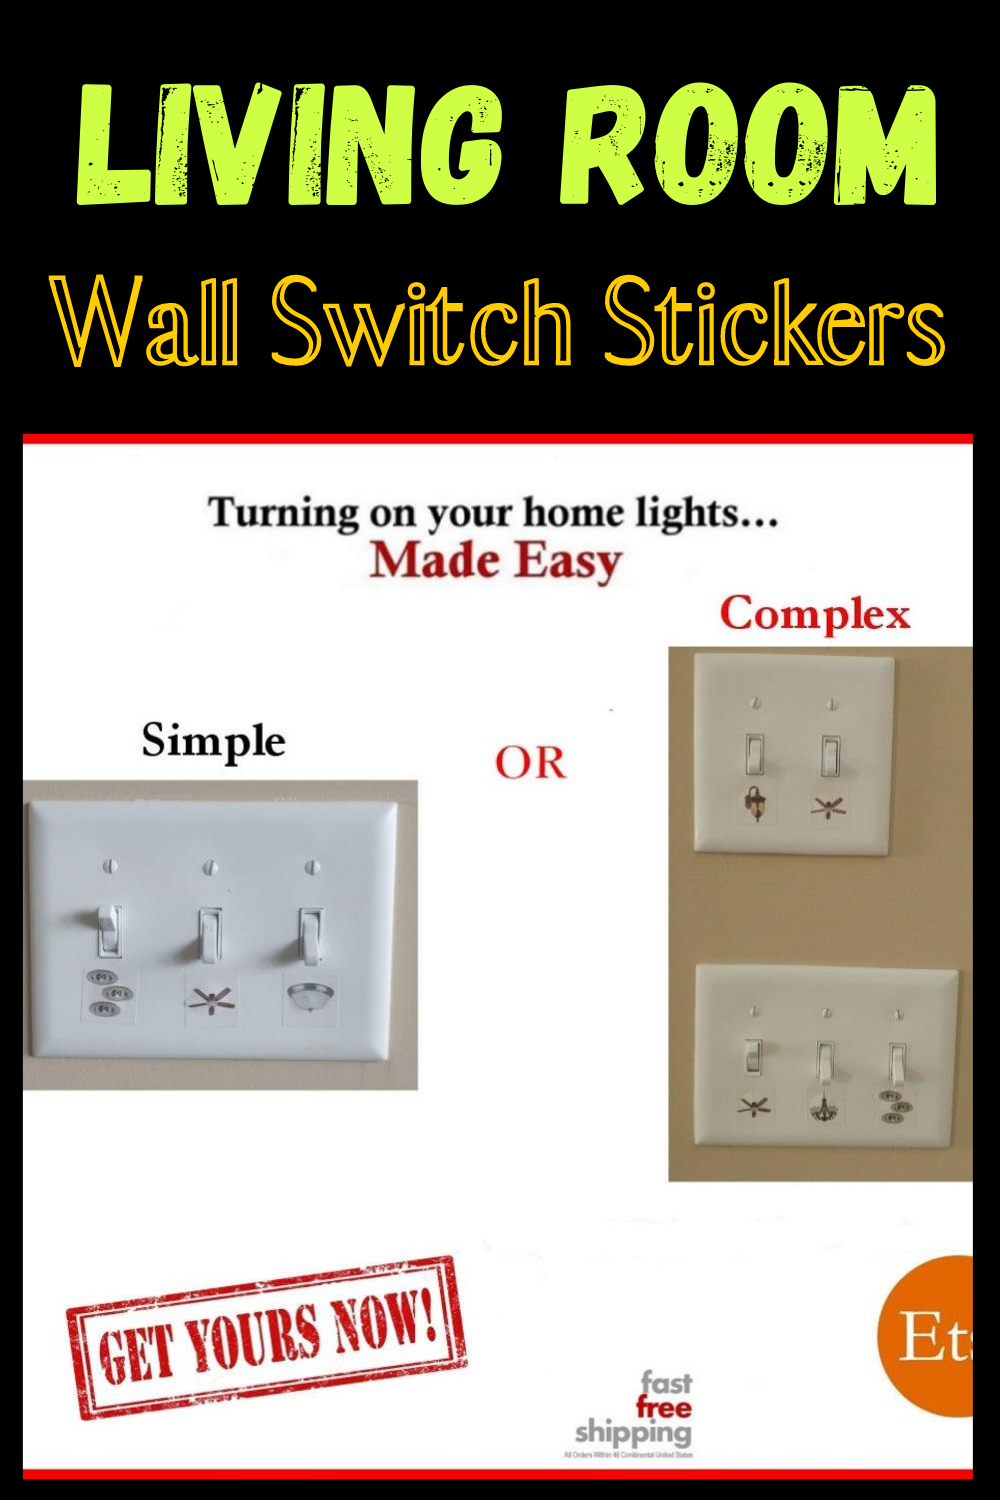 Living Room Wall Switch Stickers 200 Labels And Stickers Etsy Light Switch Decal Living Room Wall Switch